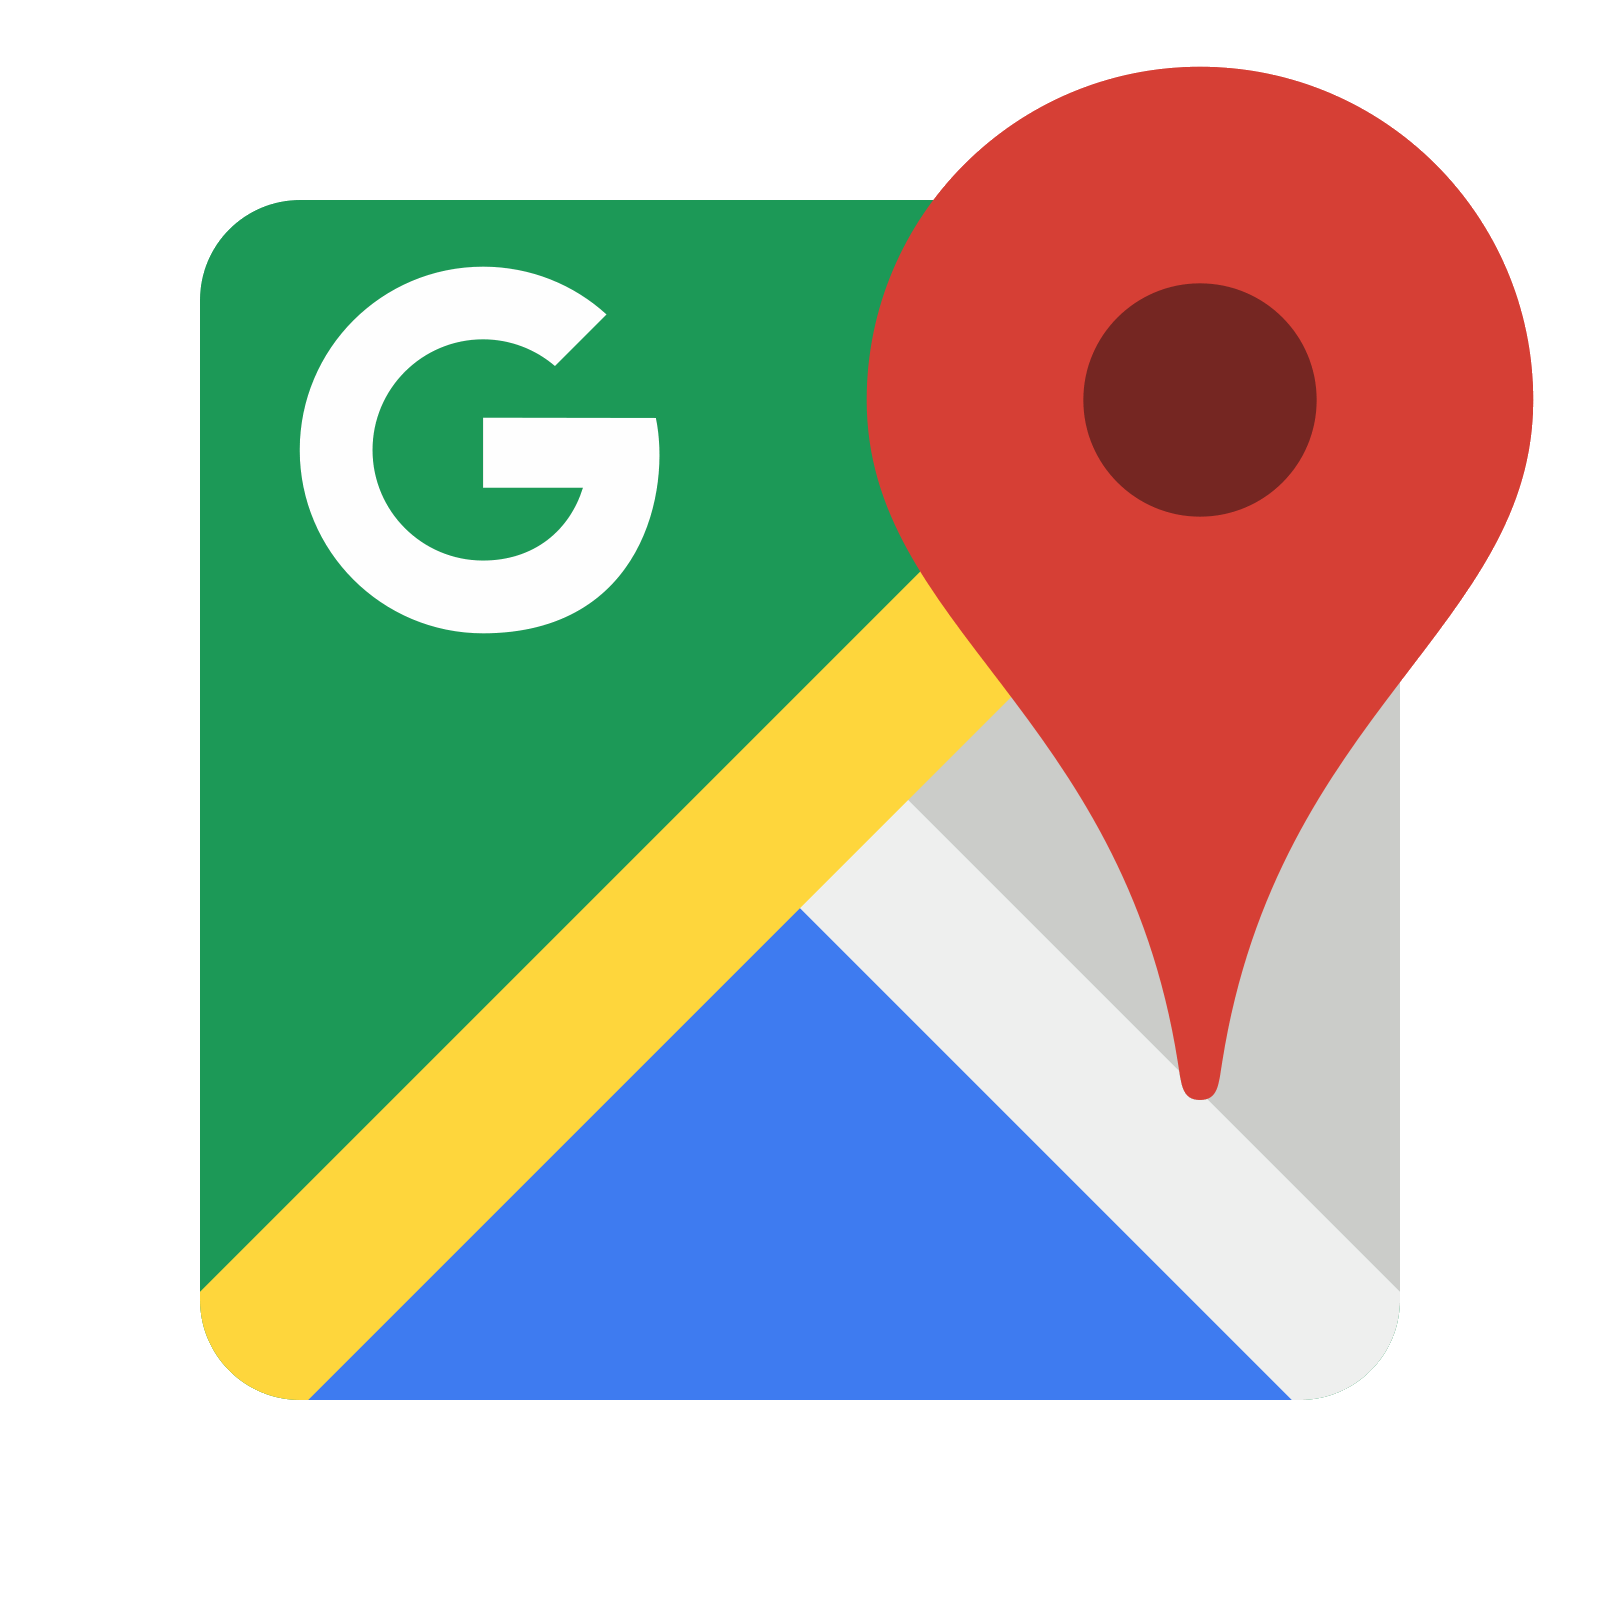 image Gps clipart google map. Maps icon kostenloser download